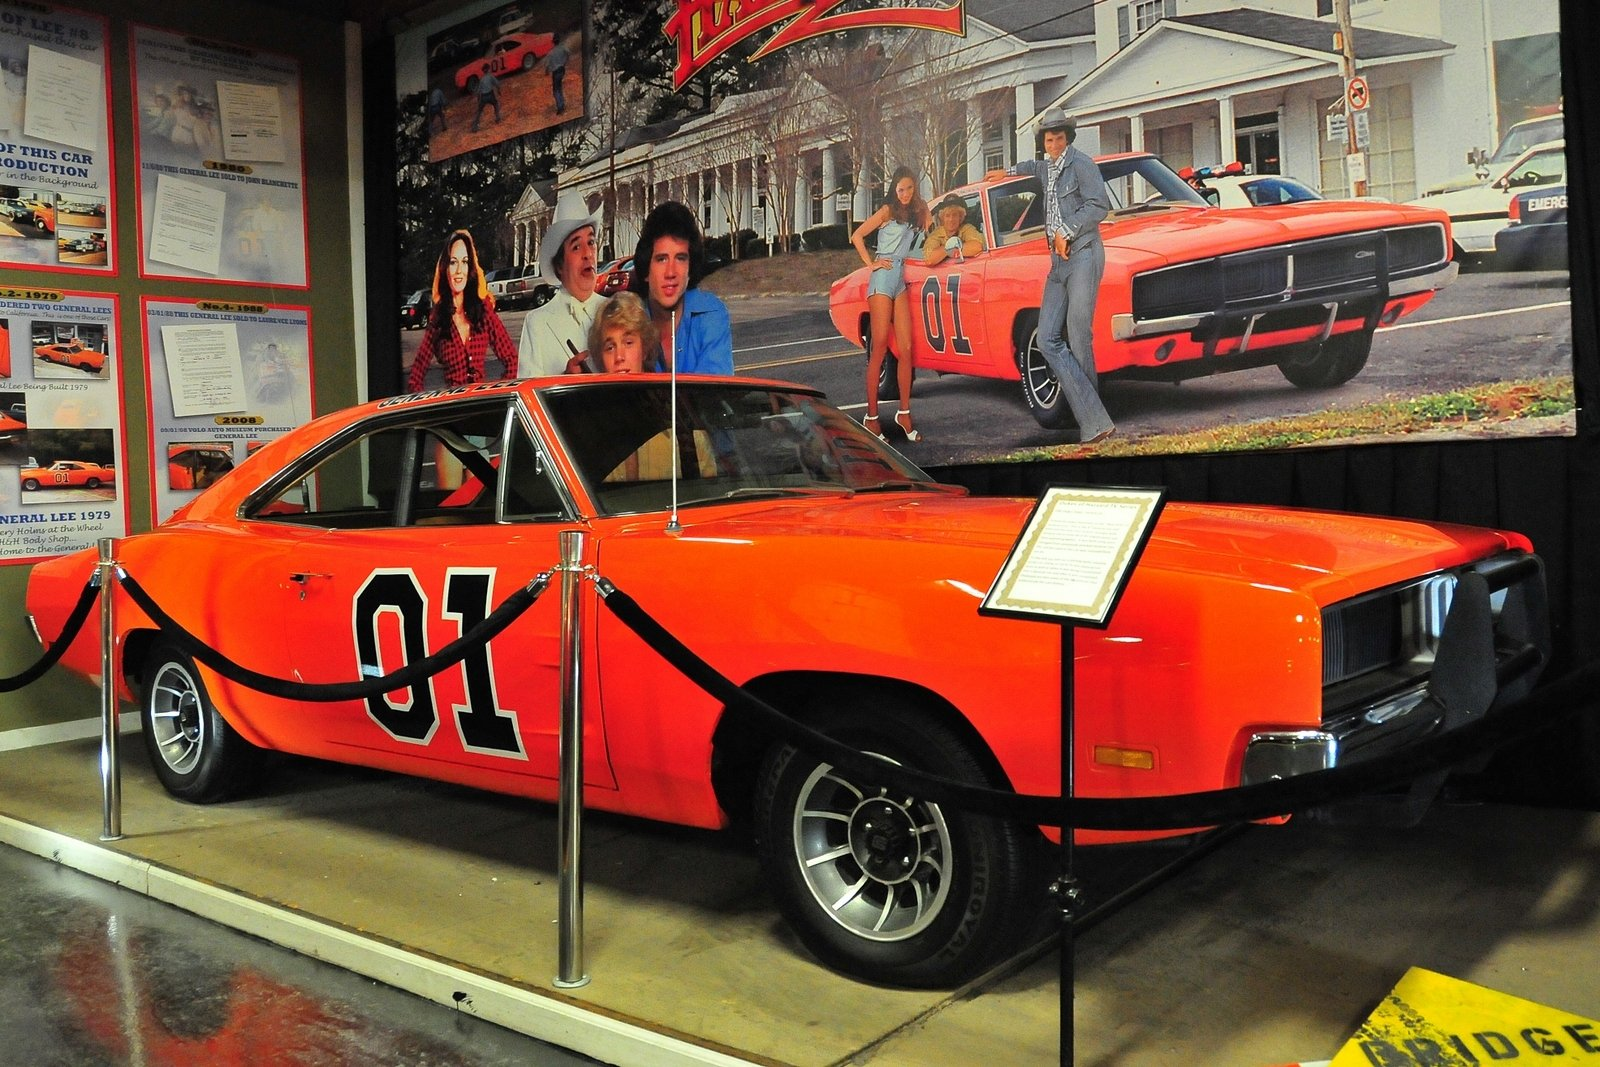 rent the dukes of hazard Dodge Charger